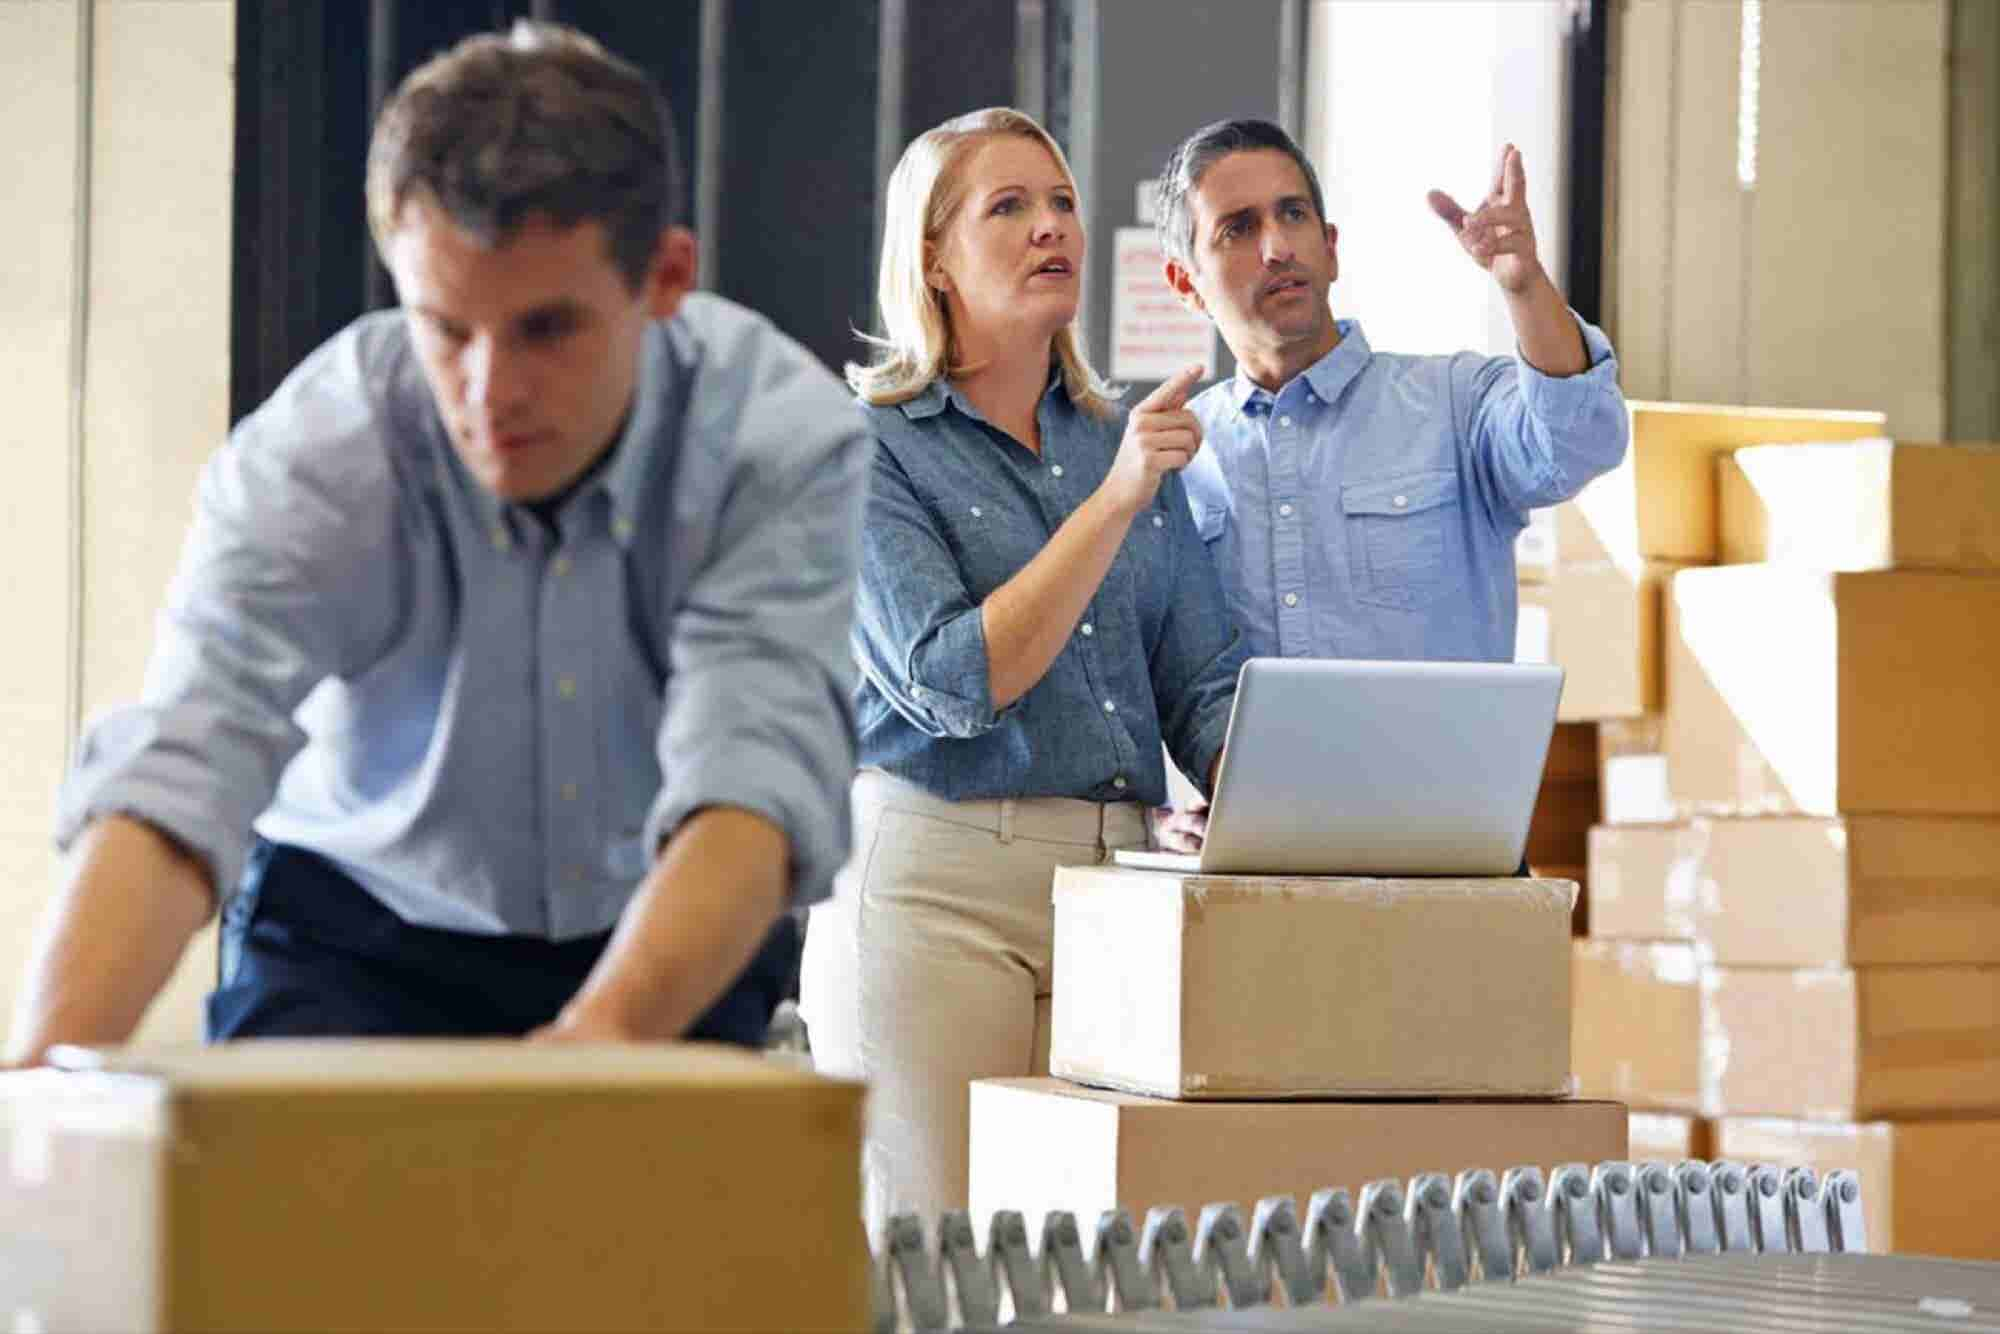 4 Things Every Small-Business Owner Can Do to Finish 2014 Strong